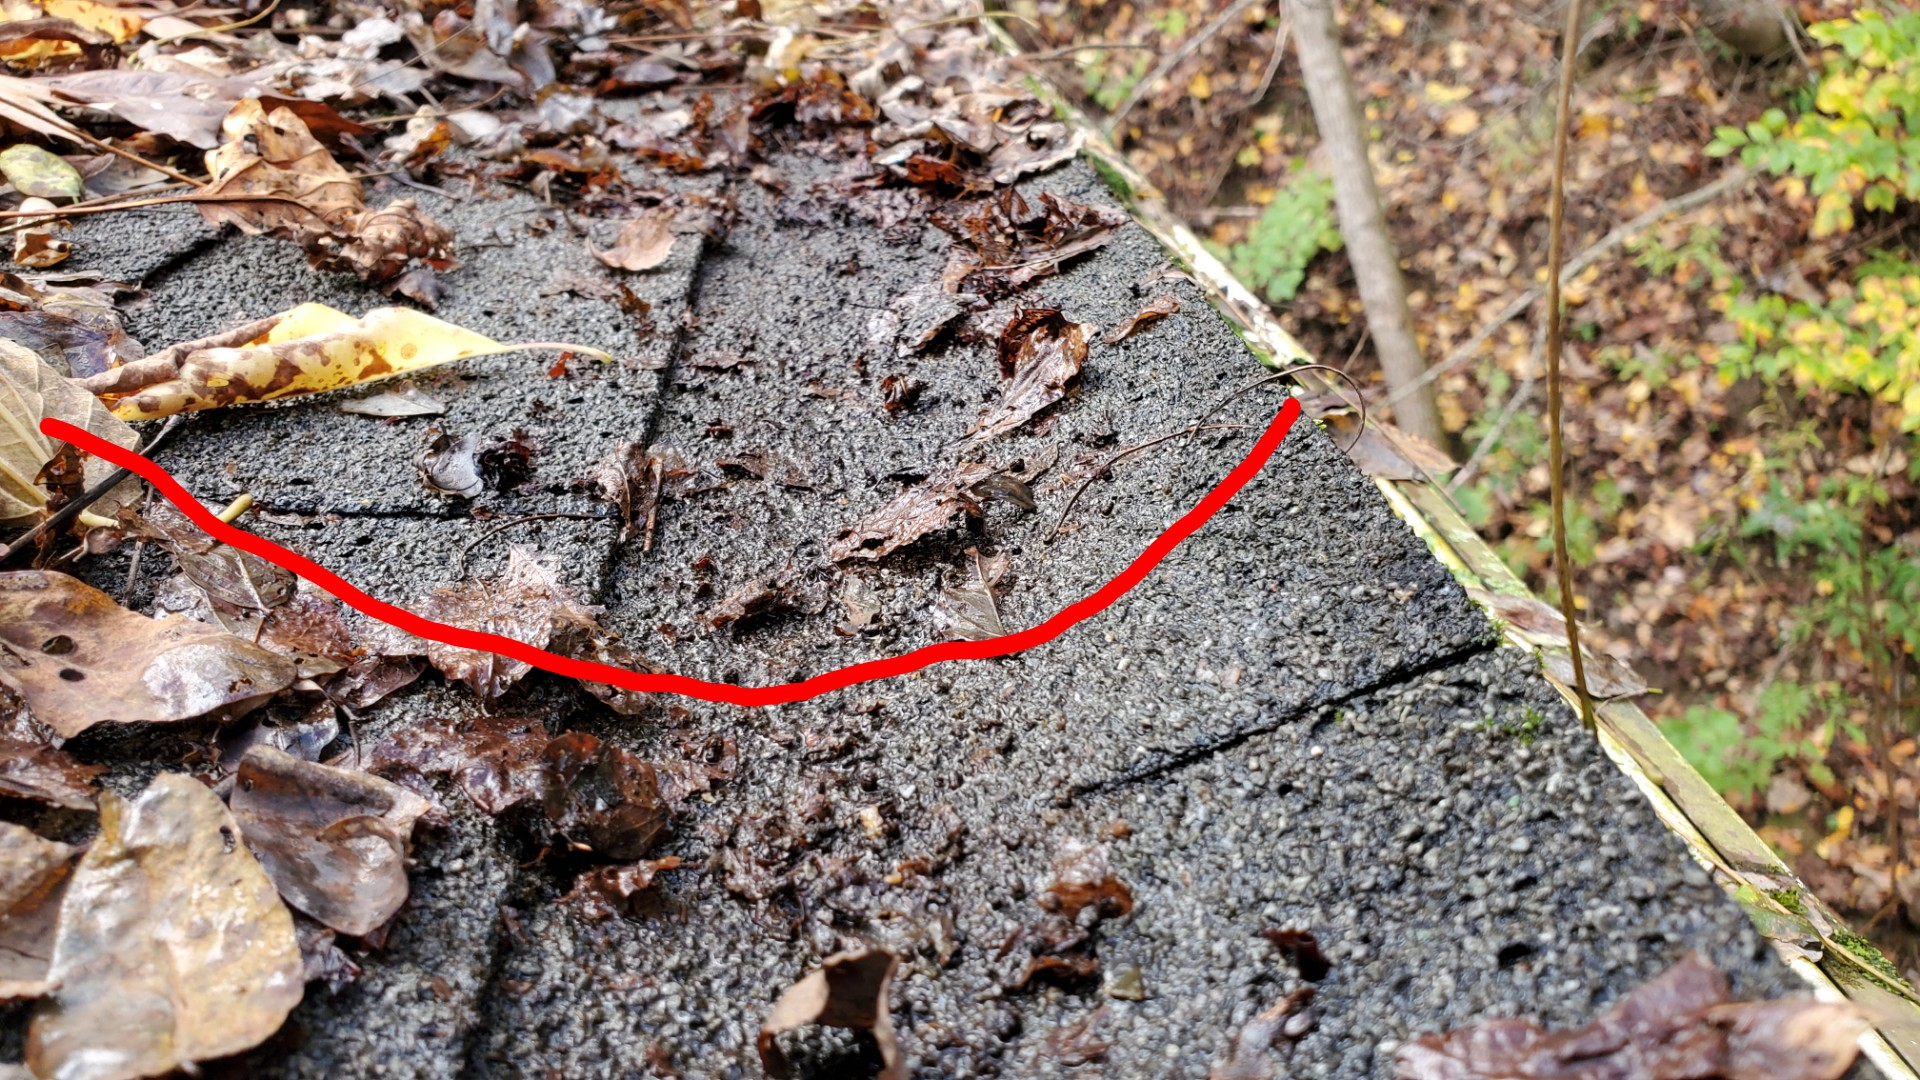 This is a picture of shingles covered in wet leaves and debris. There is a red line showing the shingles are dipping down